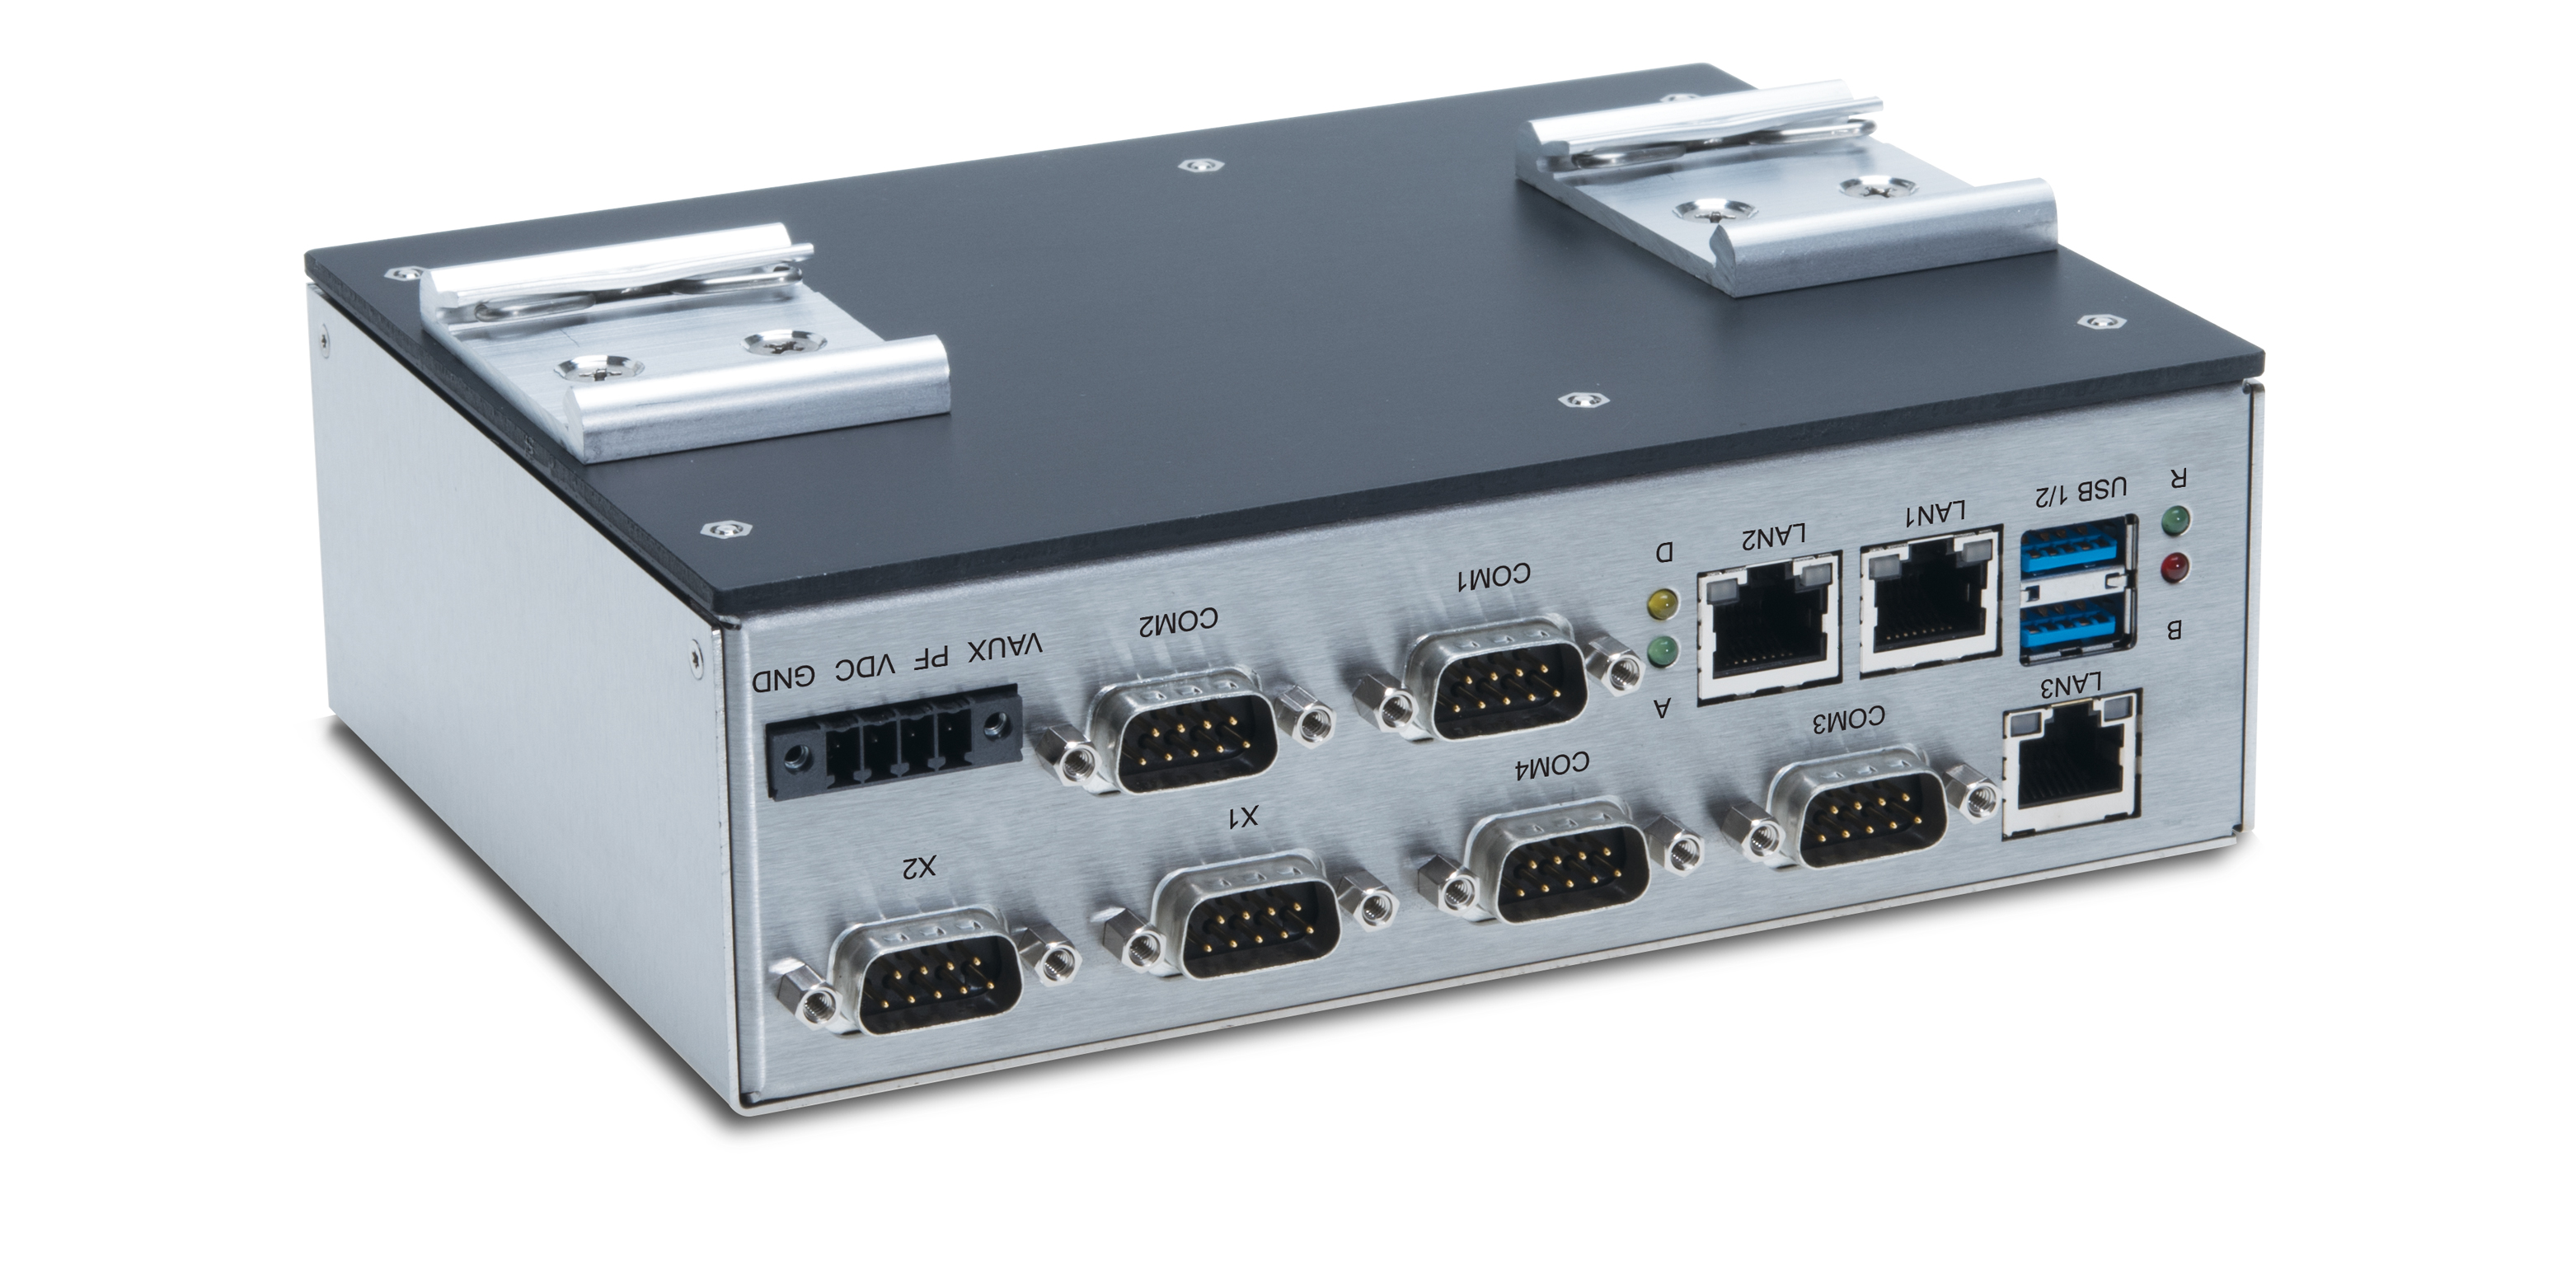 M - Embedded PC COMPACT8 - Syslogic